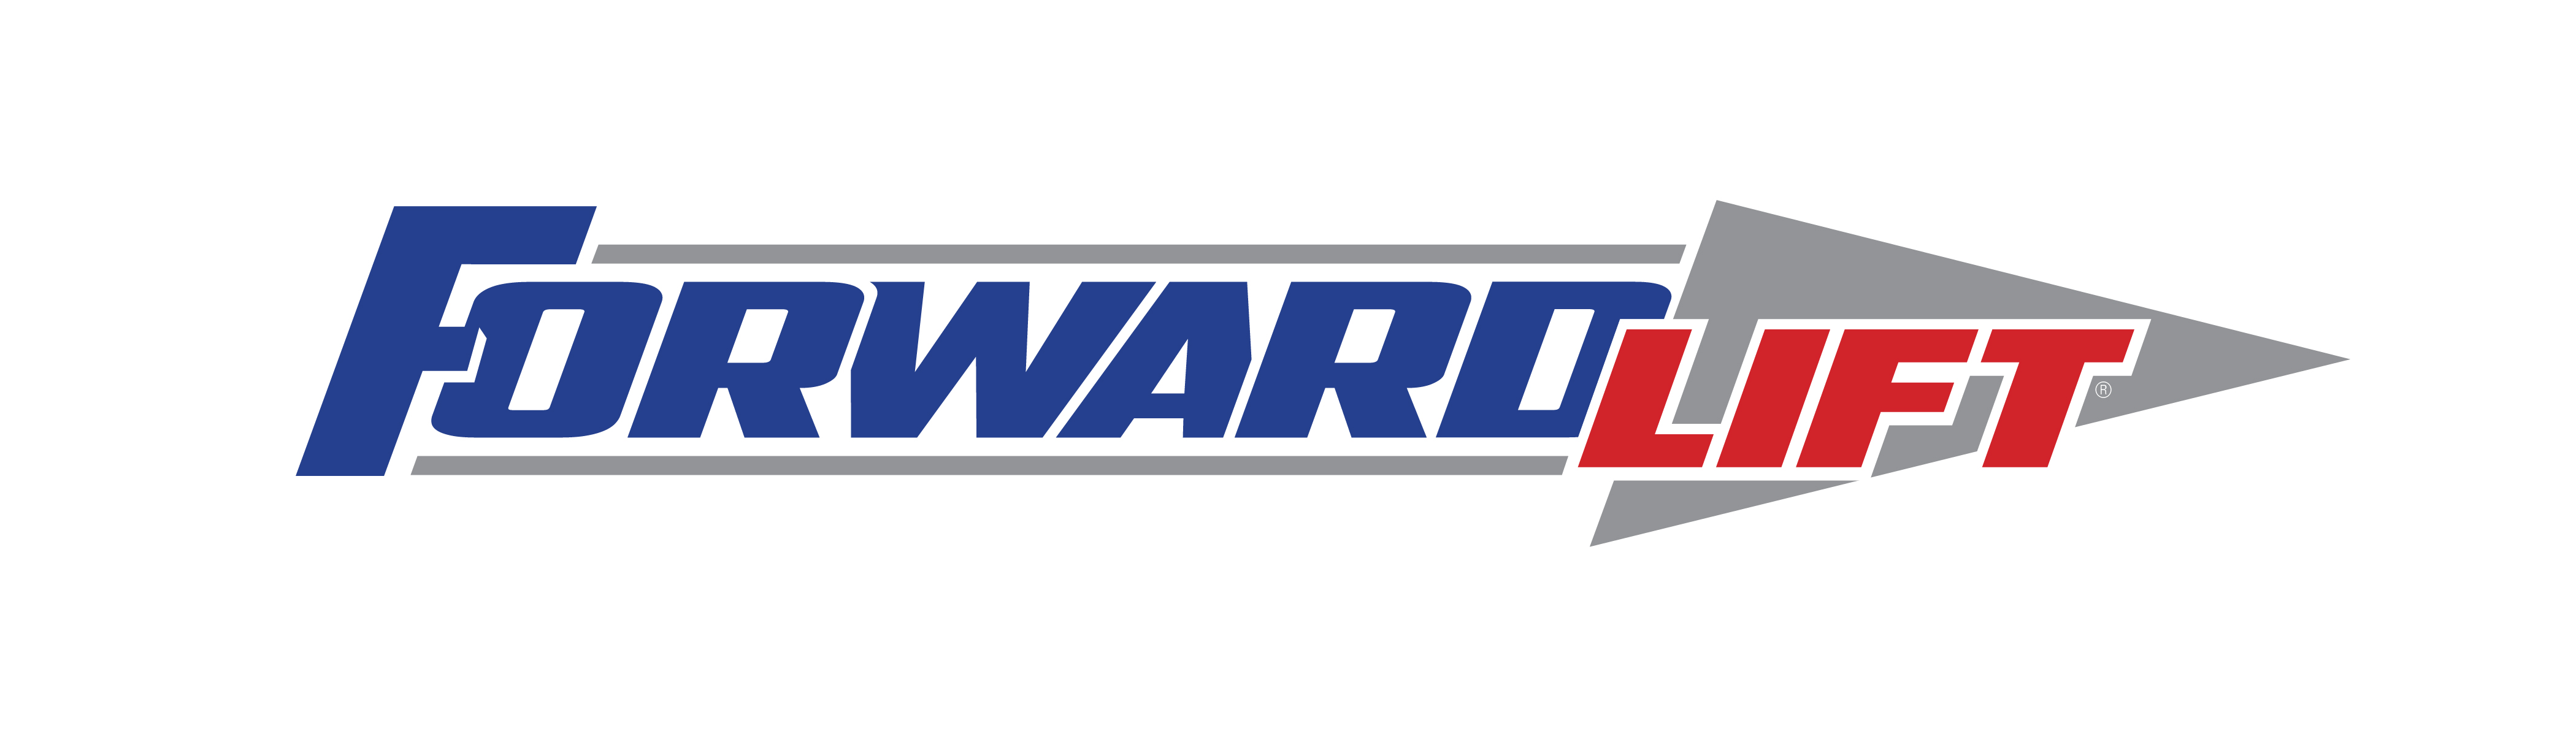 FORWARD LIFT COLOR LOGO 2018